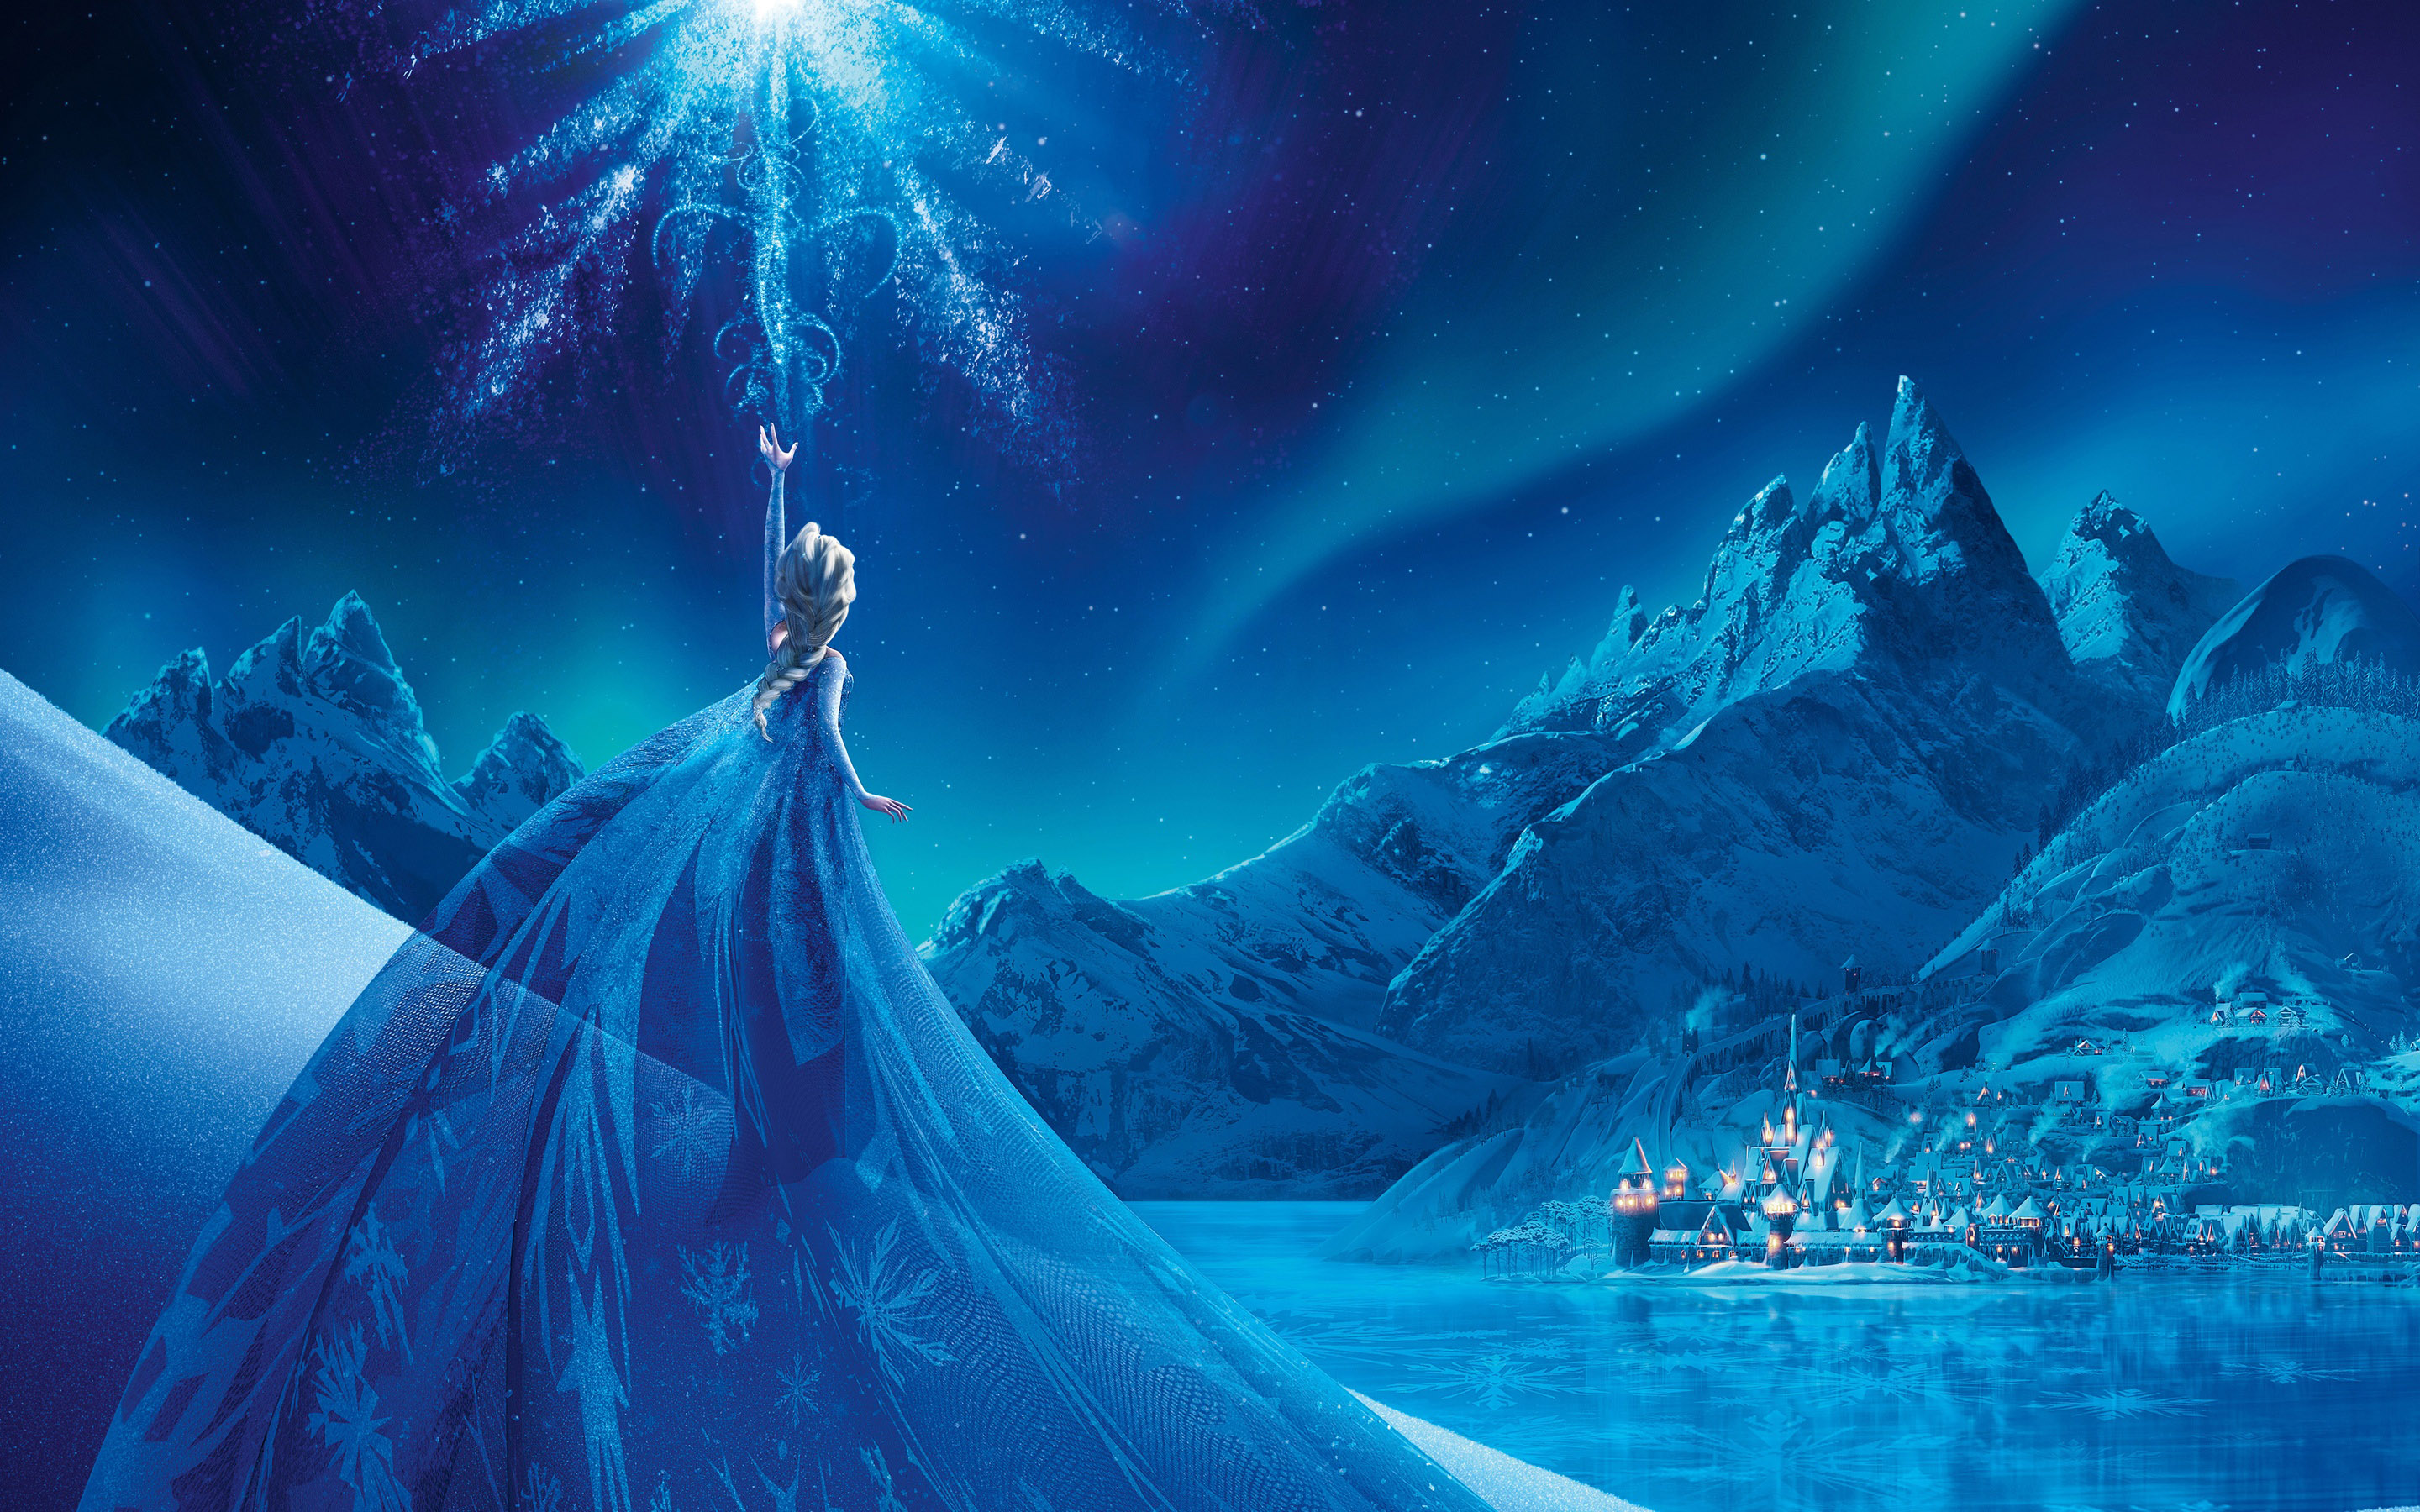 Stunning Disney Frozen Wallpaper 19779